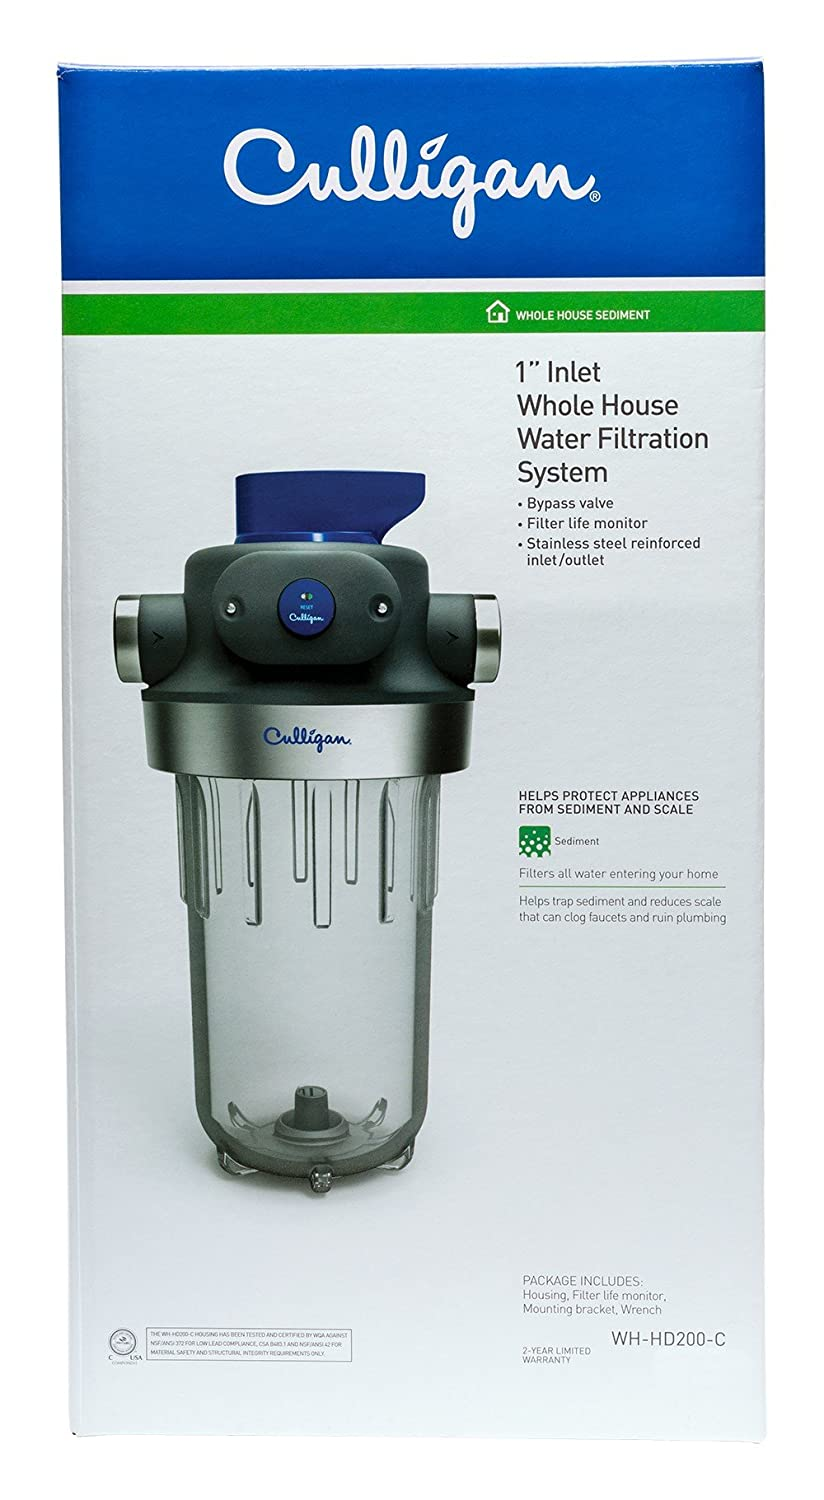 Household Water Filter System Culligan Wh Hd200 C Whole House Heavy Duty 1 Inlet Outlet